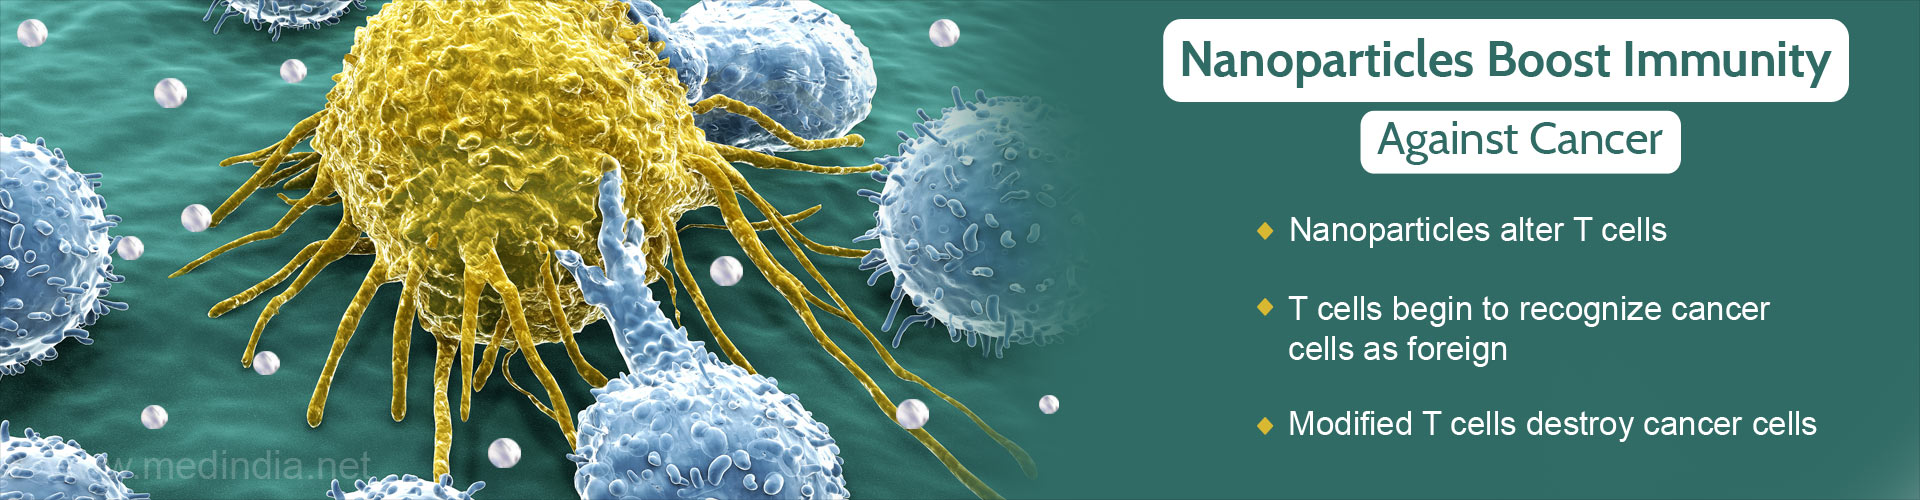 Nanoparticles Boost Immunity Against Cancer